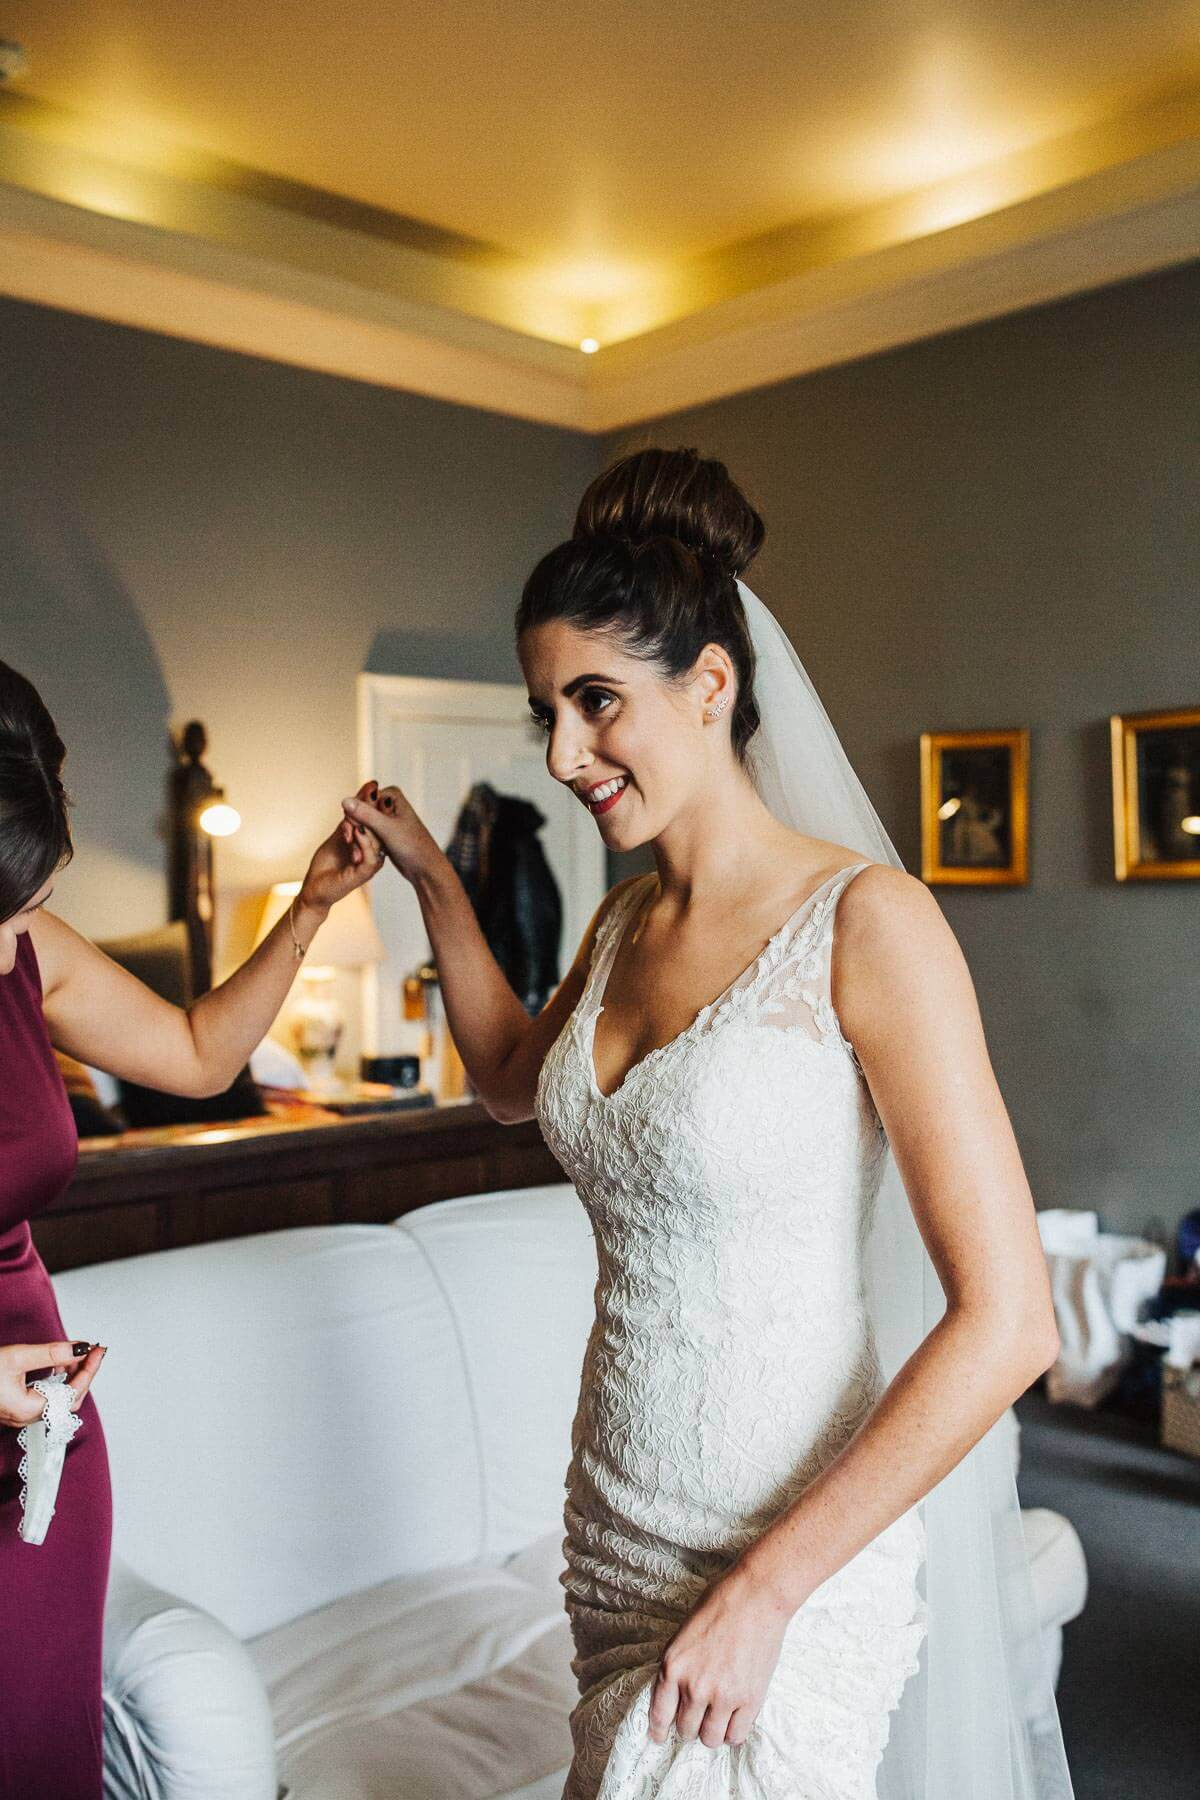 The bride smiling as she's helped into her dress at Askham Hall